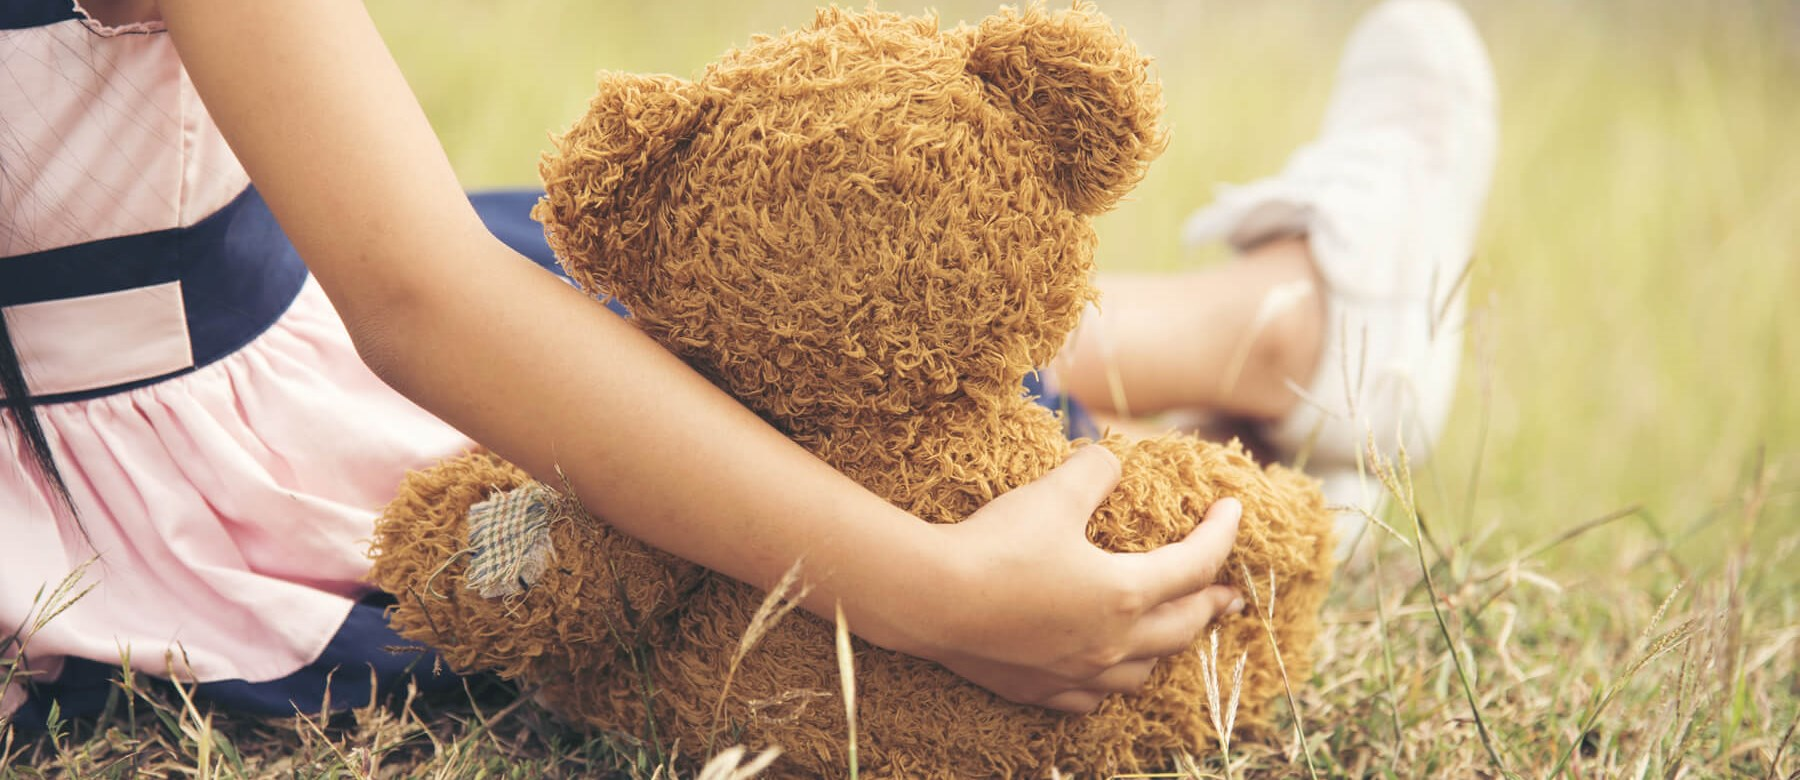 Girl Hugging Teddy on Grass